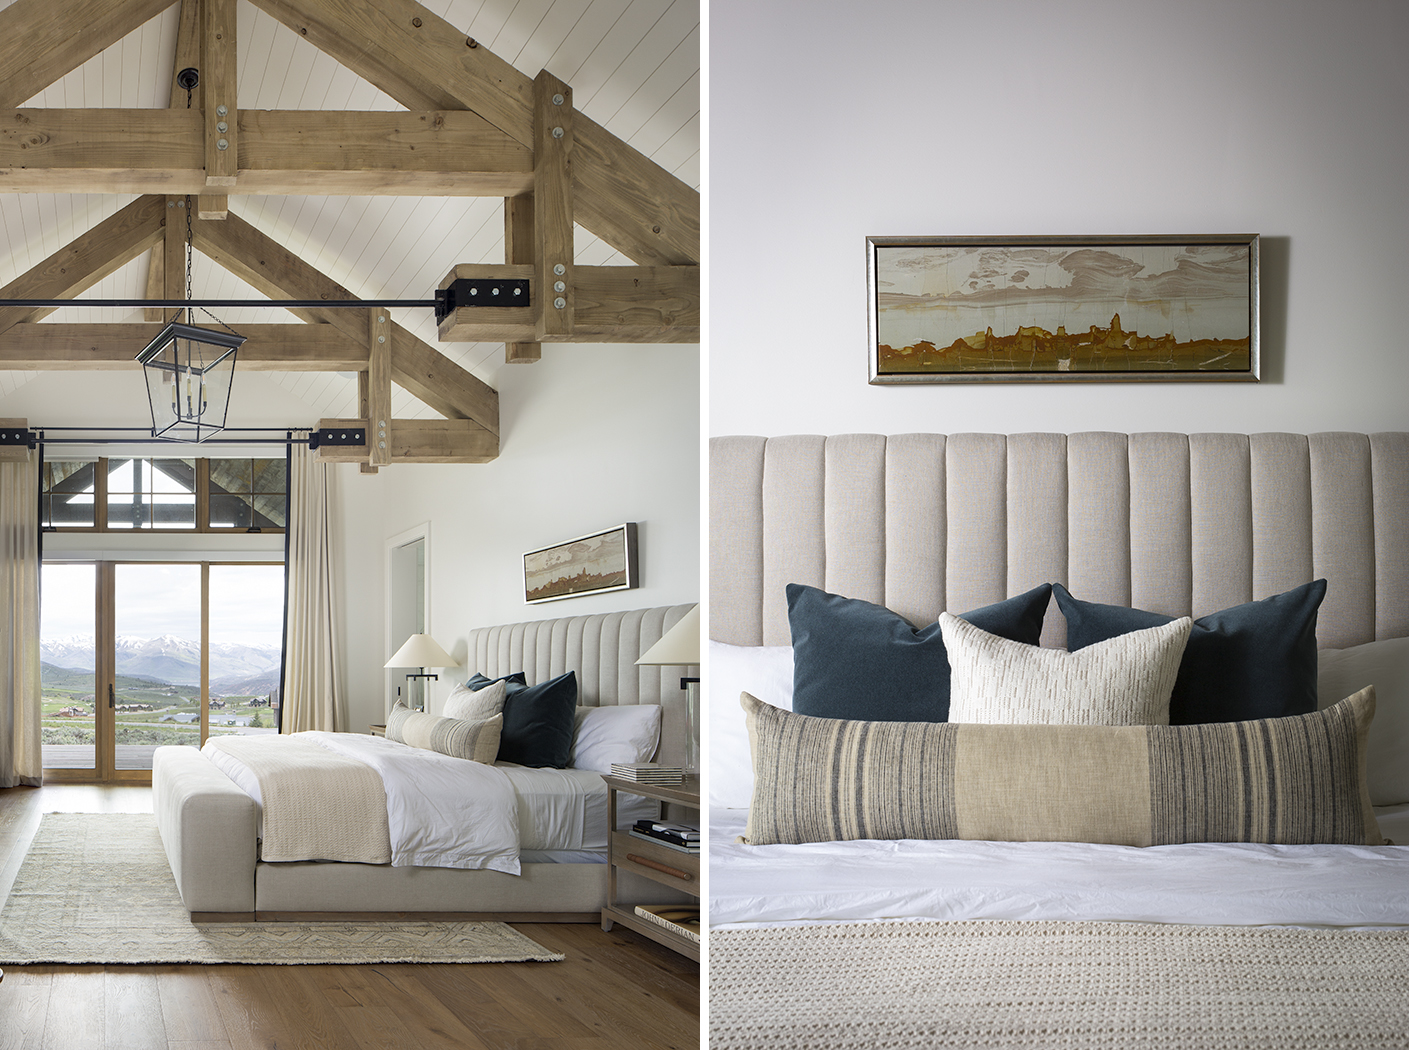 Two interior photographs showing design elements from the  master bedroom of a contemporary, mountain rustic residence in Park City, UT. The photograph on the left is an overall shot of the bedroom that shows exposed wood, beams, with vaulted ceilings and mountain views and the other photograph is a vignette of the bedding and pillows.